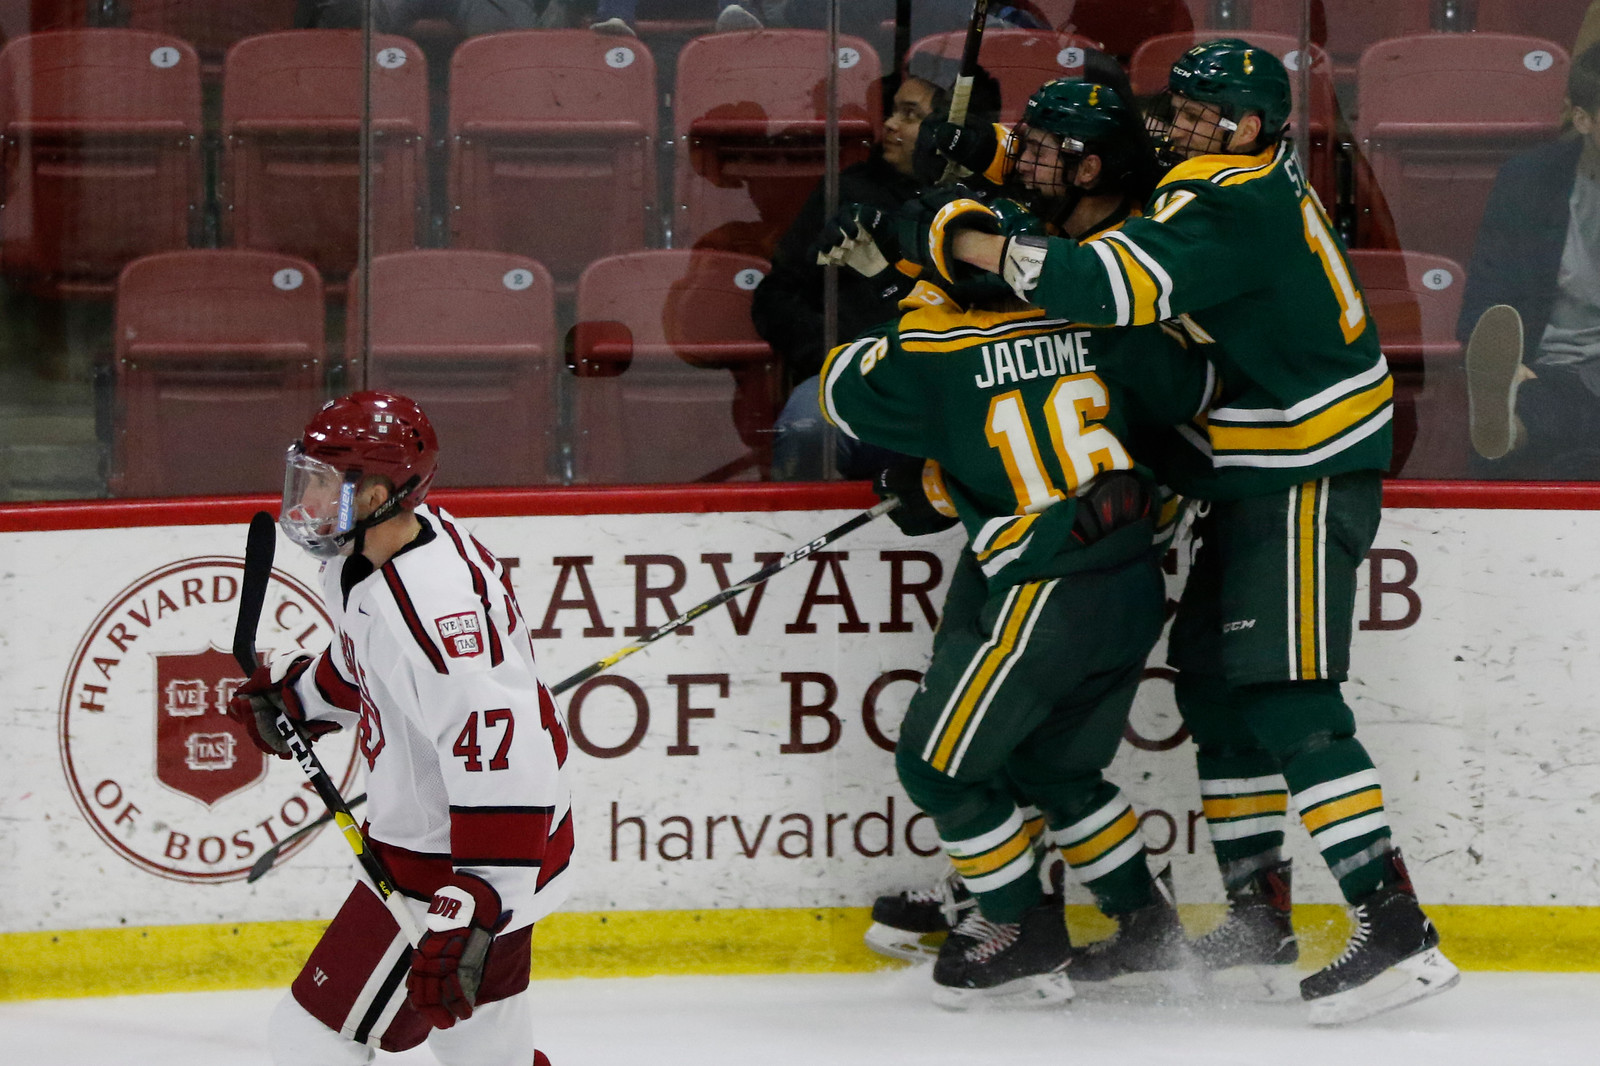 The Golden Knights ended the Crimson's ECAC playoff run, but Harvard still managed to clinch an NCAA Tournament berth due to its impressive season-long performance.